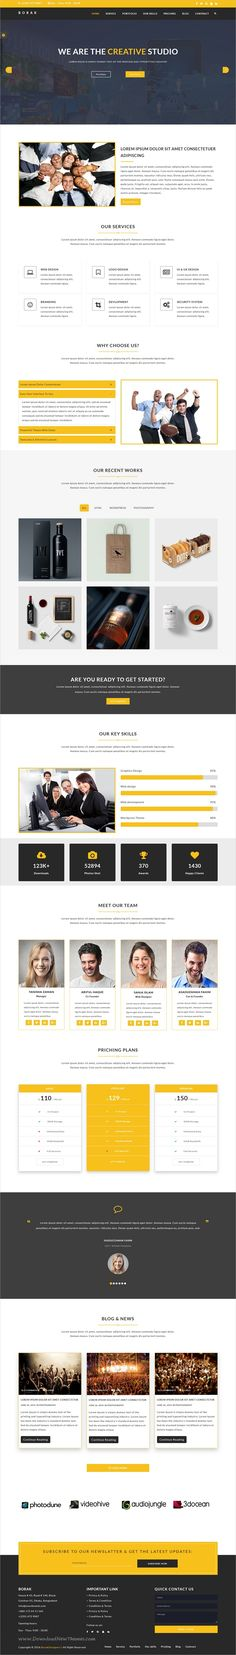 Borak is a fresh and clean #Design responsive HTML5 #bootstrap template for corporate #business websites download now➩ https://themeforest.net/item/borak-material-design-business-template/19299915?ref=Datasata